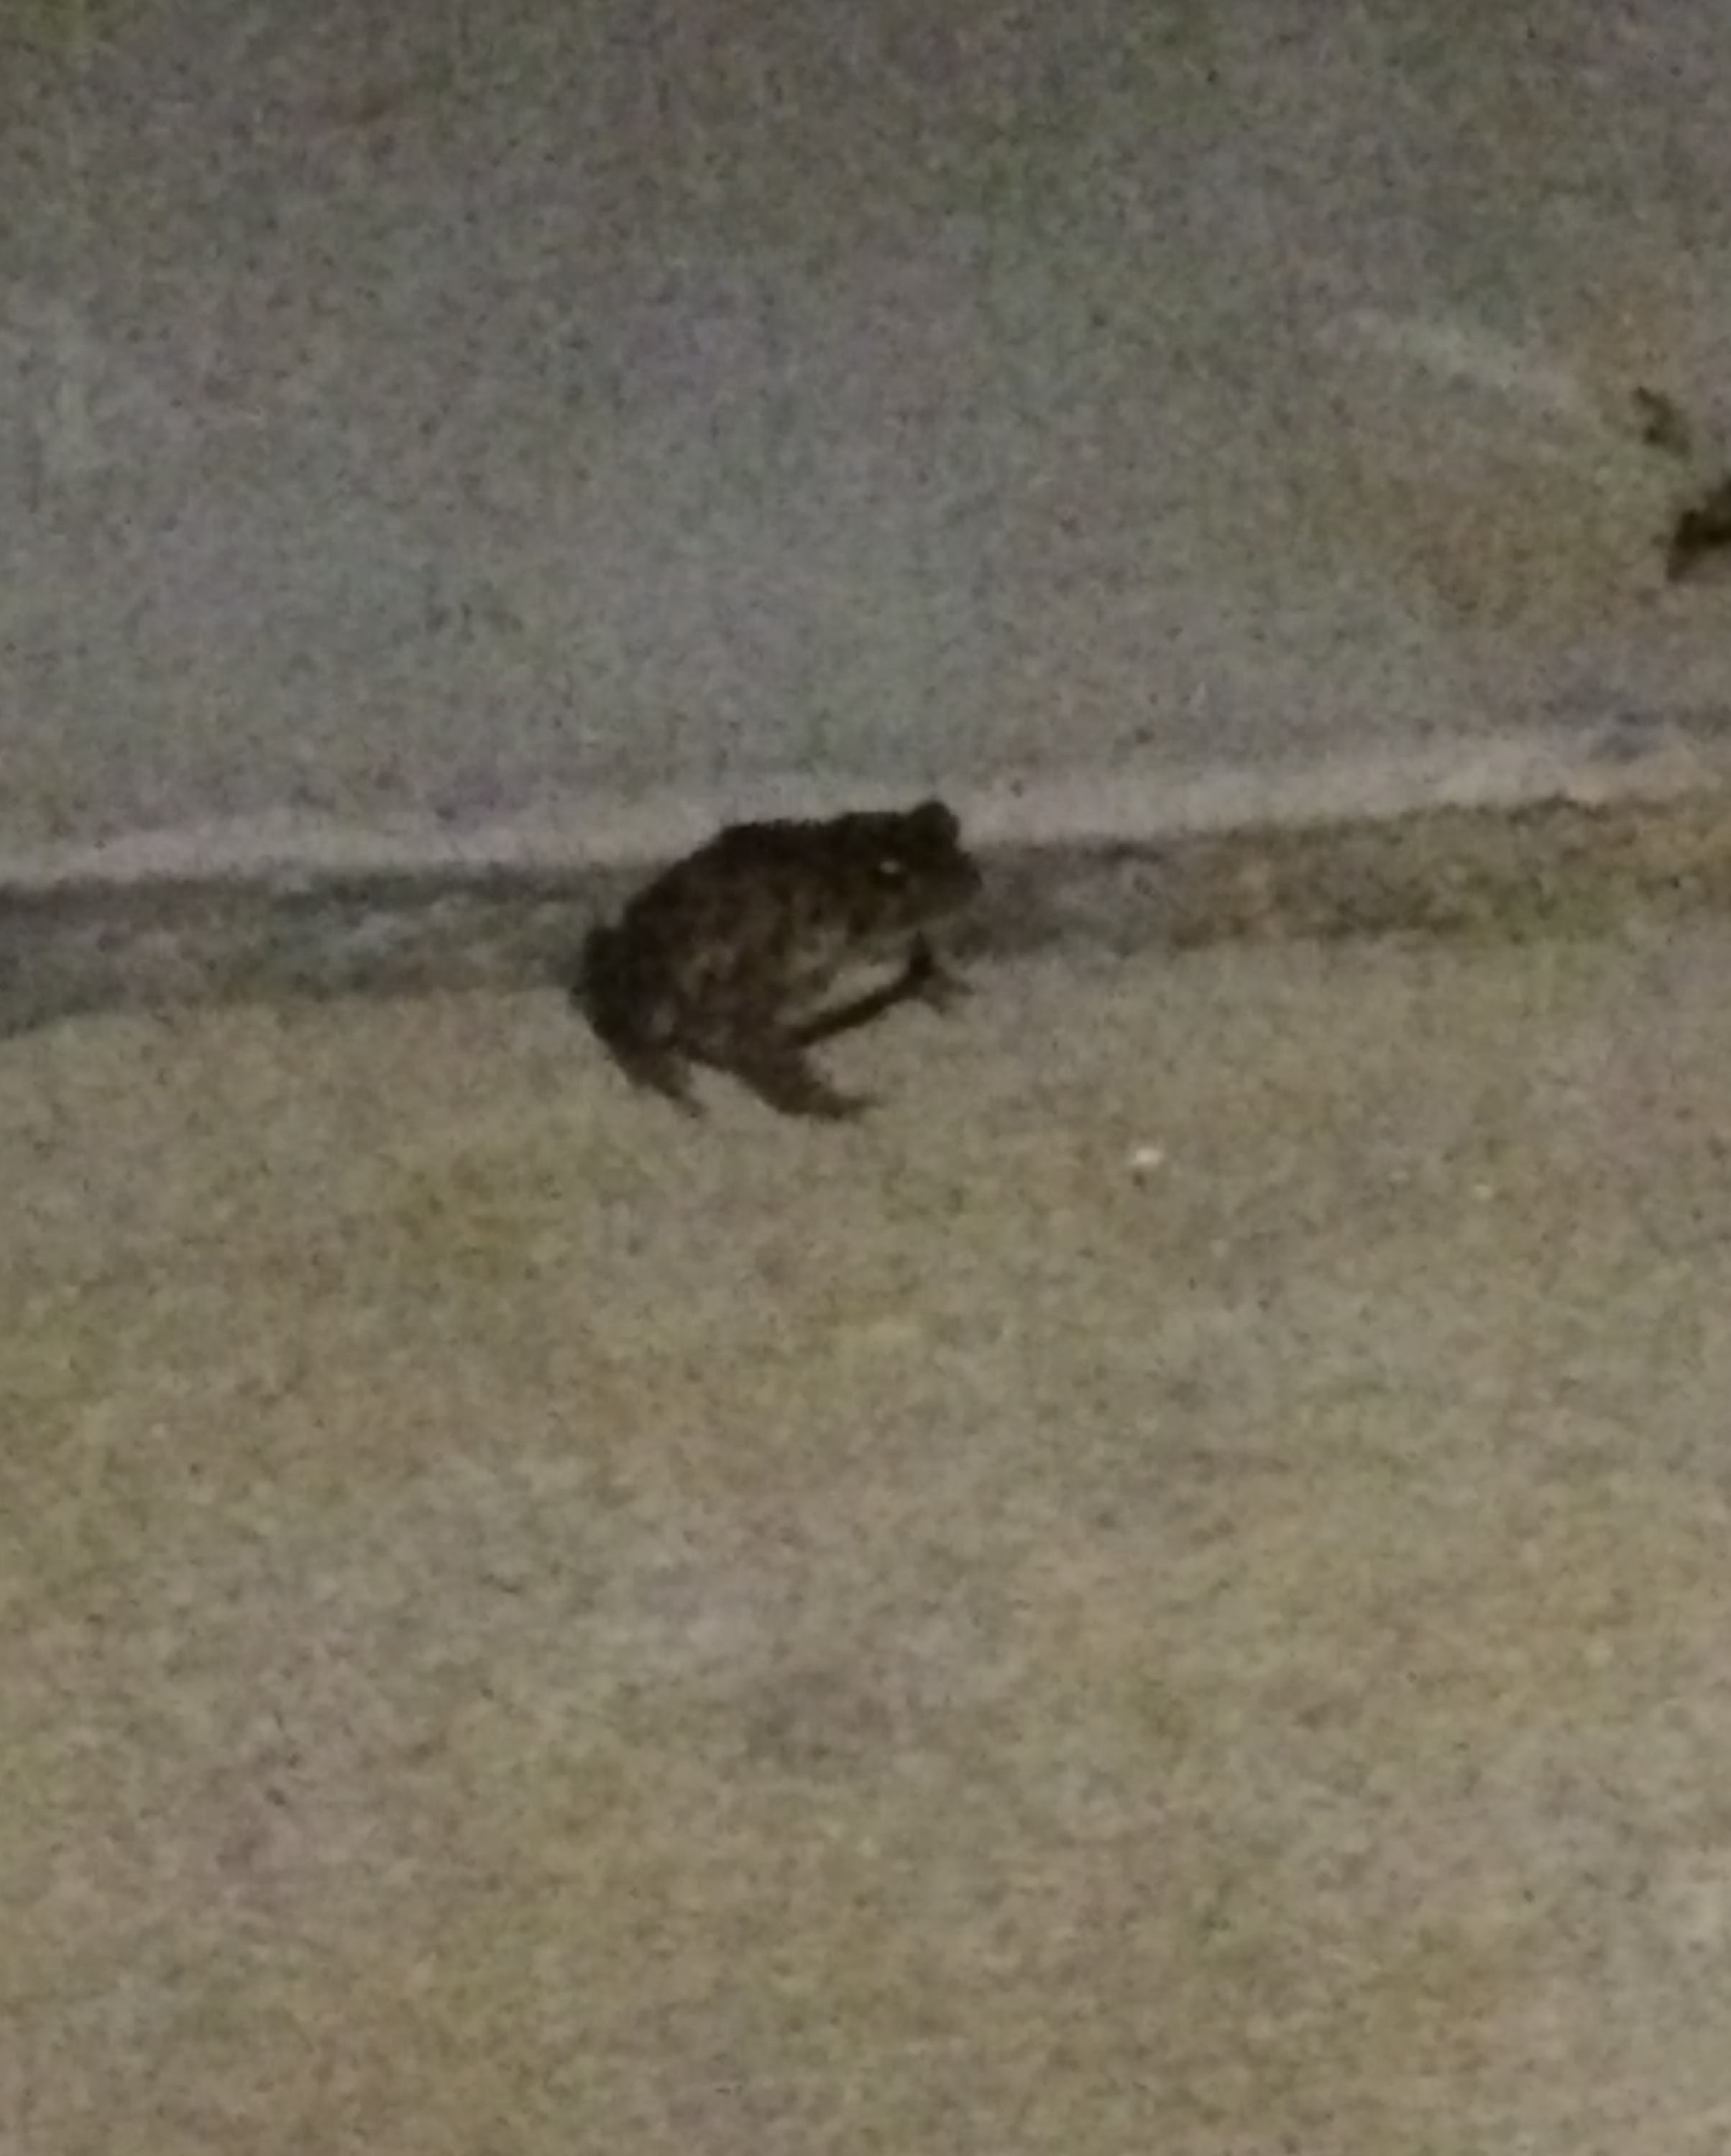 Super grainy photo I know, but this frog was right by my car on the sidewalk on Monday night.